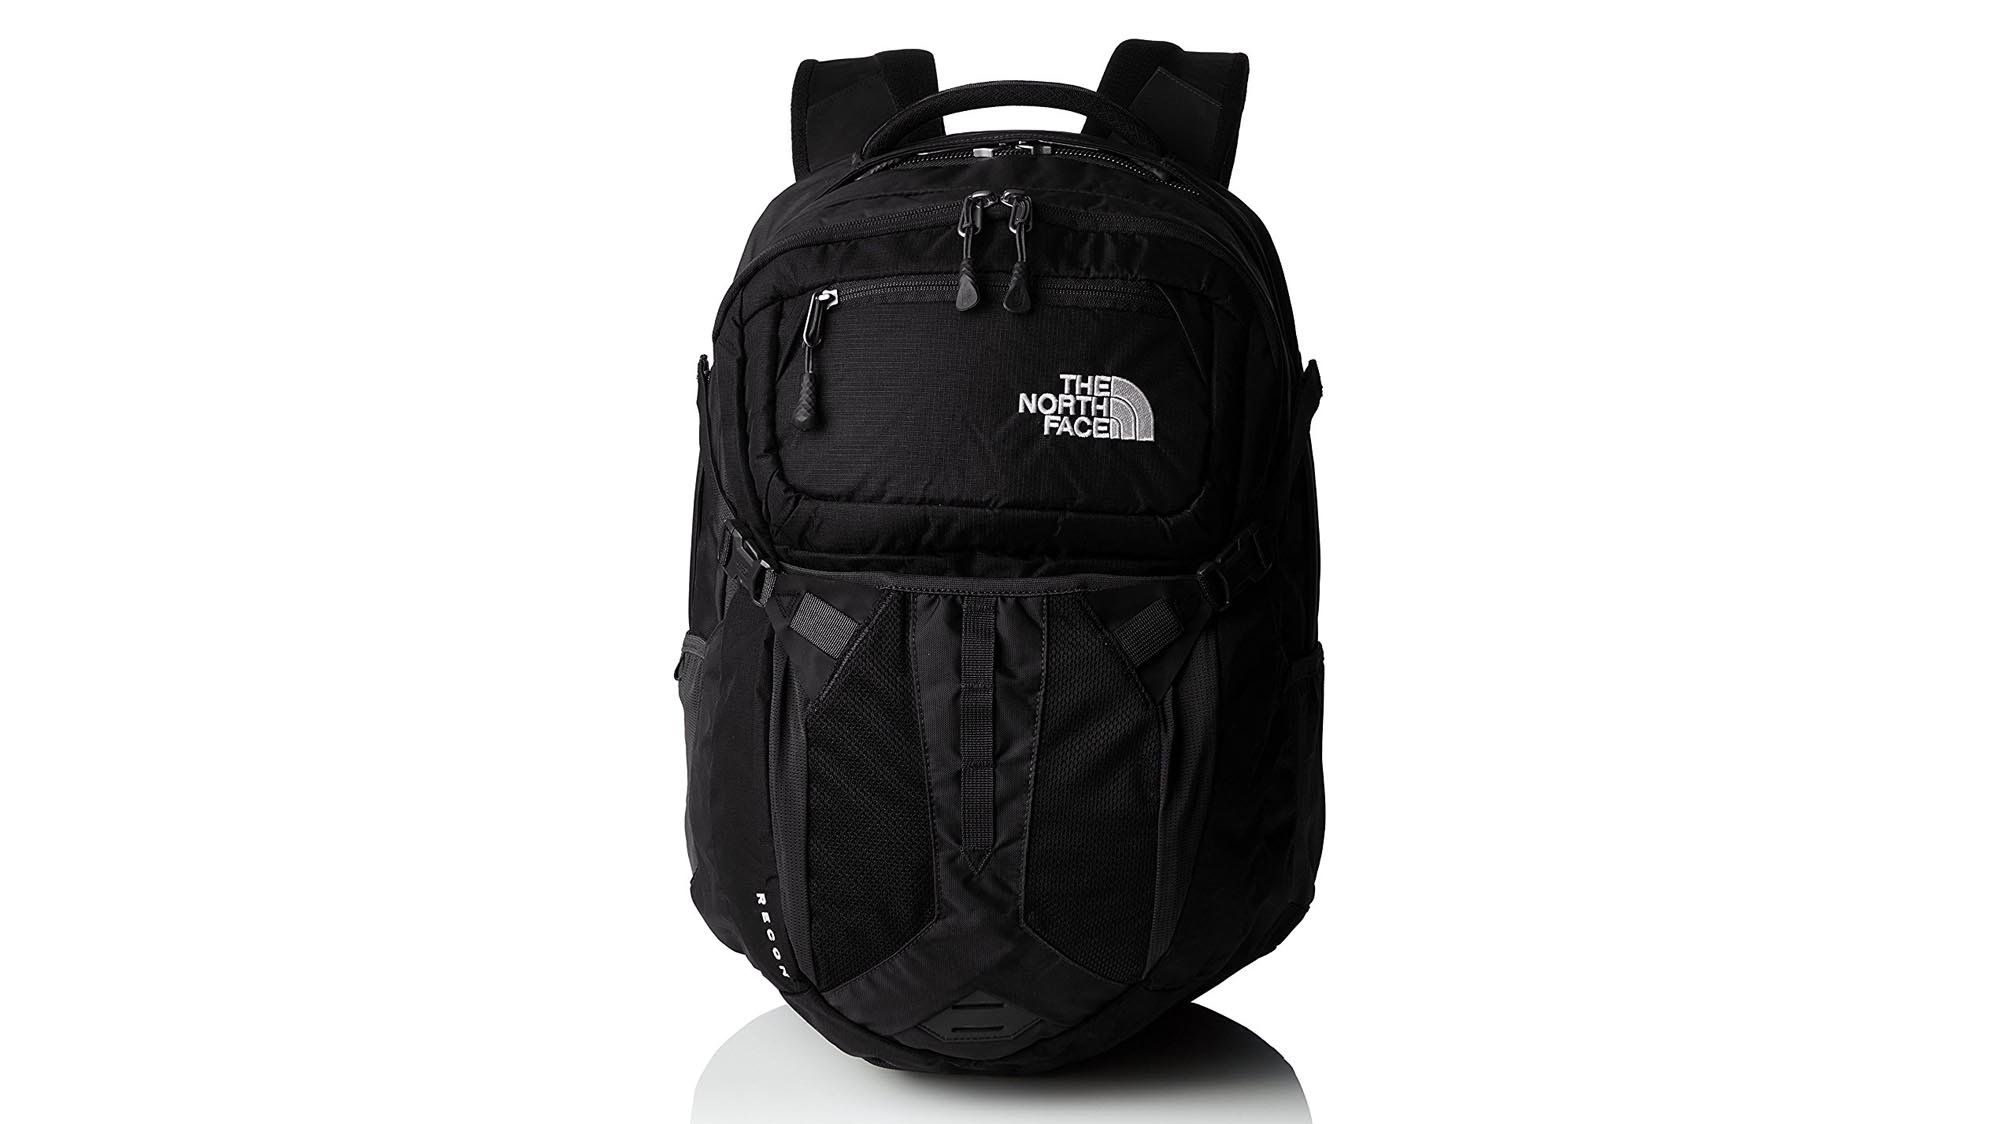 b4fe15dc62e As you might expect from such a major outdoors brand, the North Face Recon  is as comfortable working as a daysack at the weekend as a laptop bag on  your ...